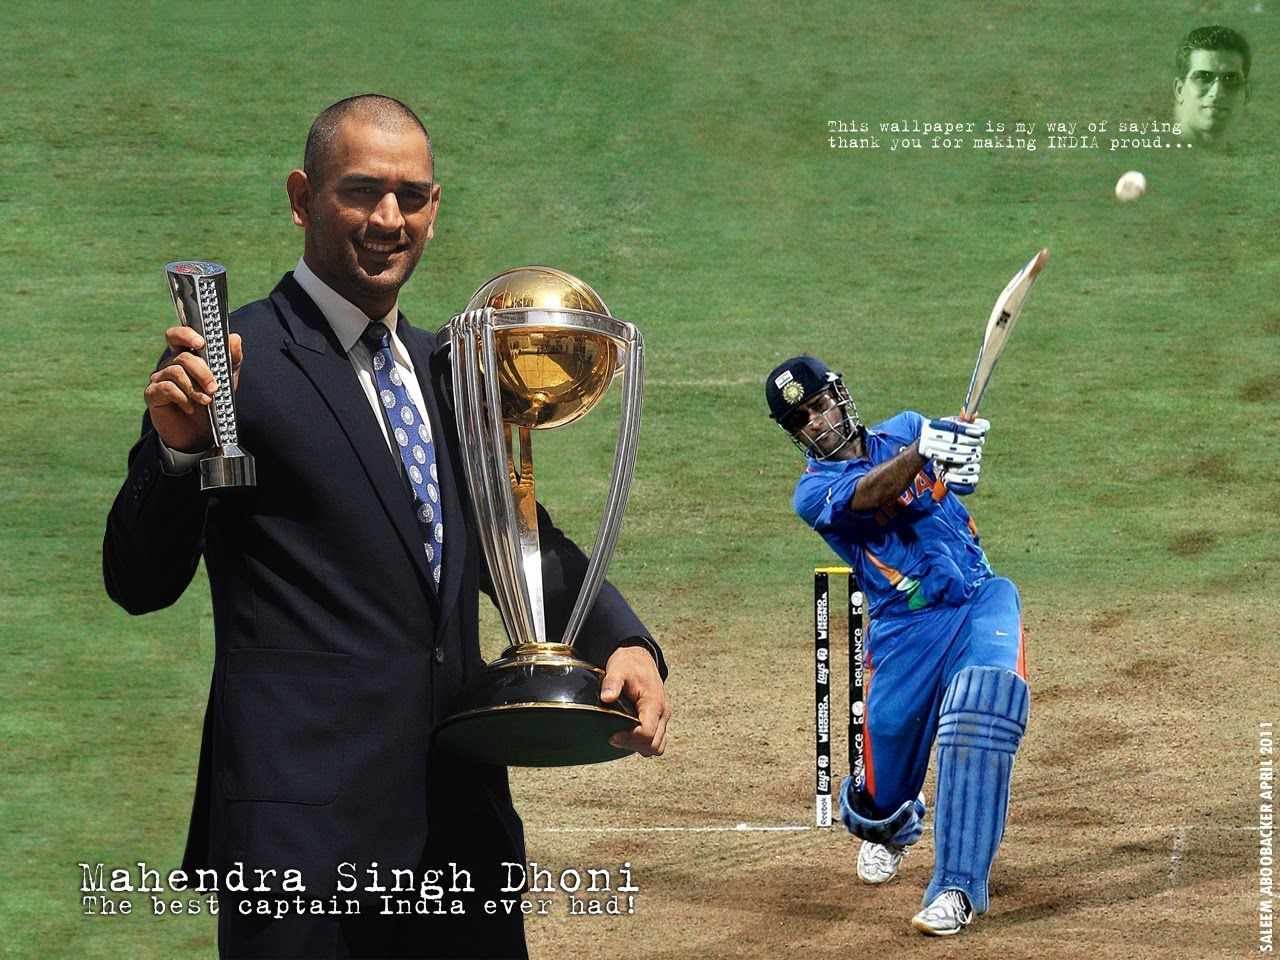 7c7fd295f37d16ed56add15f731d2177 Jpg 1280 960 Dhoni Wallpapers Ms Dhoni Wallpapers Ms Dhoni Photos